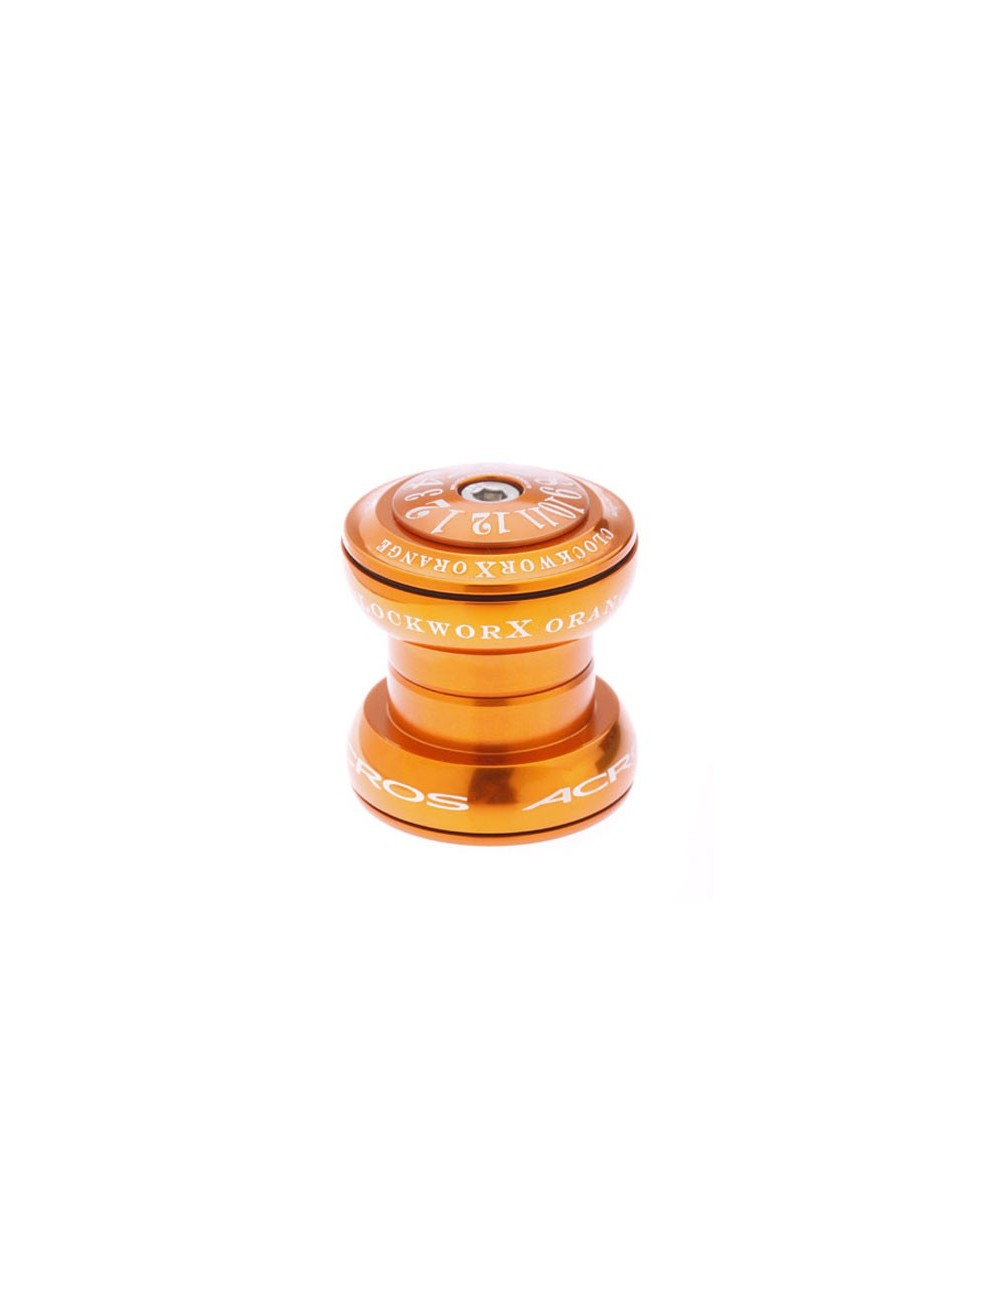 "CAIXA DIRECÇAO AH-06 1 1/8"" CLOCKWORX ORANGE"